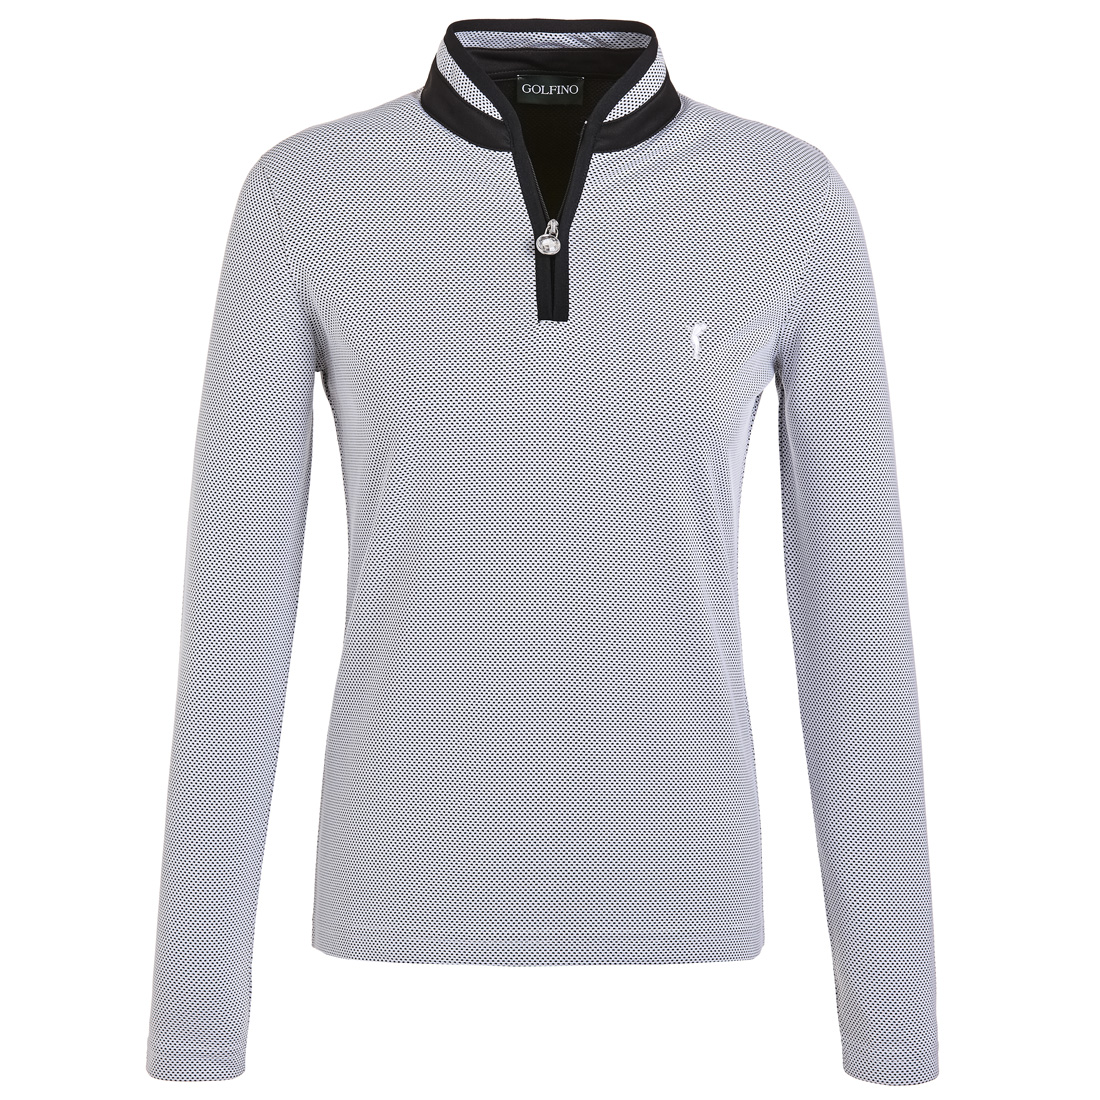 Bubble Jacquard ladies' long-sleeve functional polo with Quick Dry